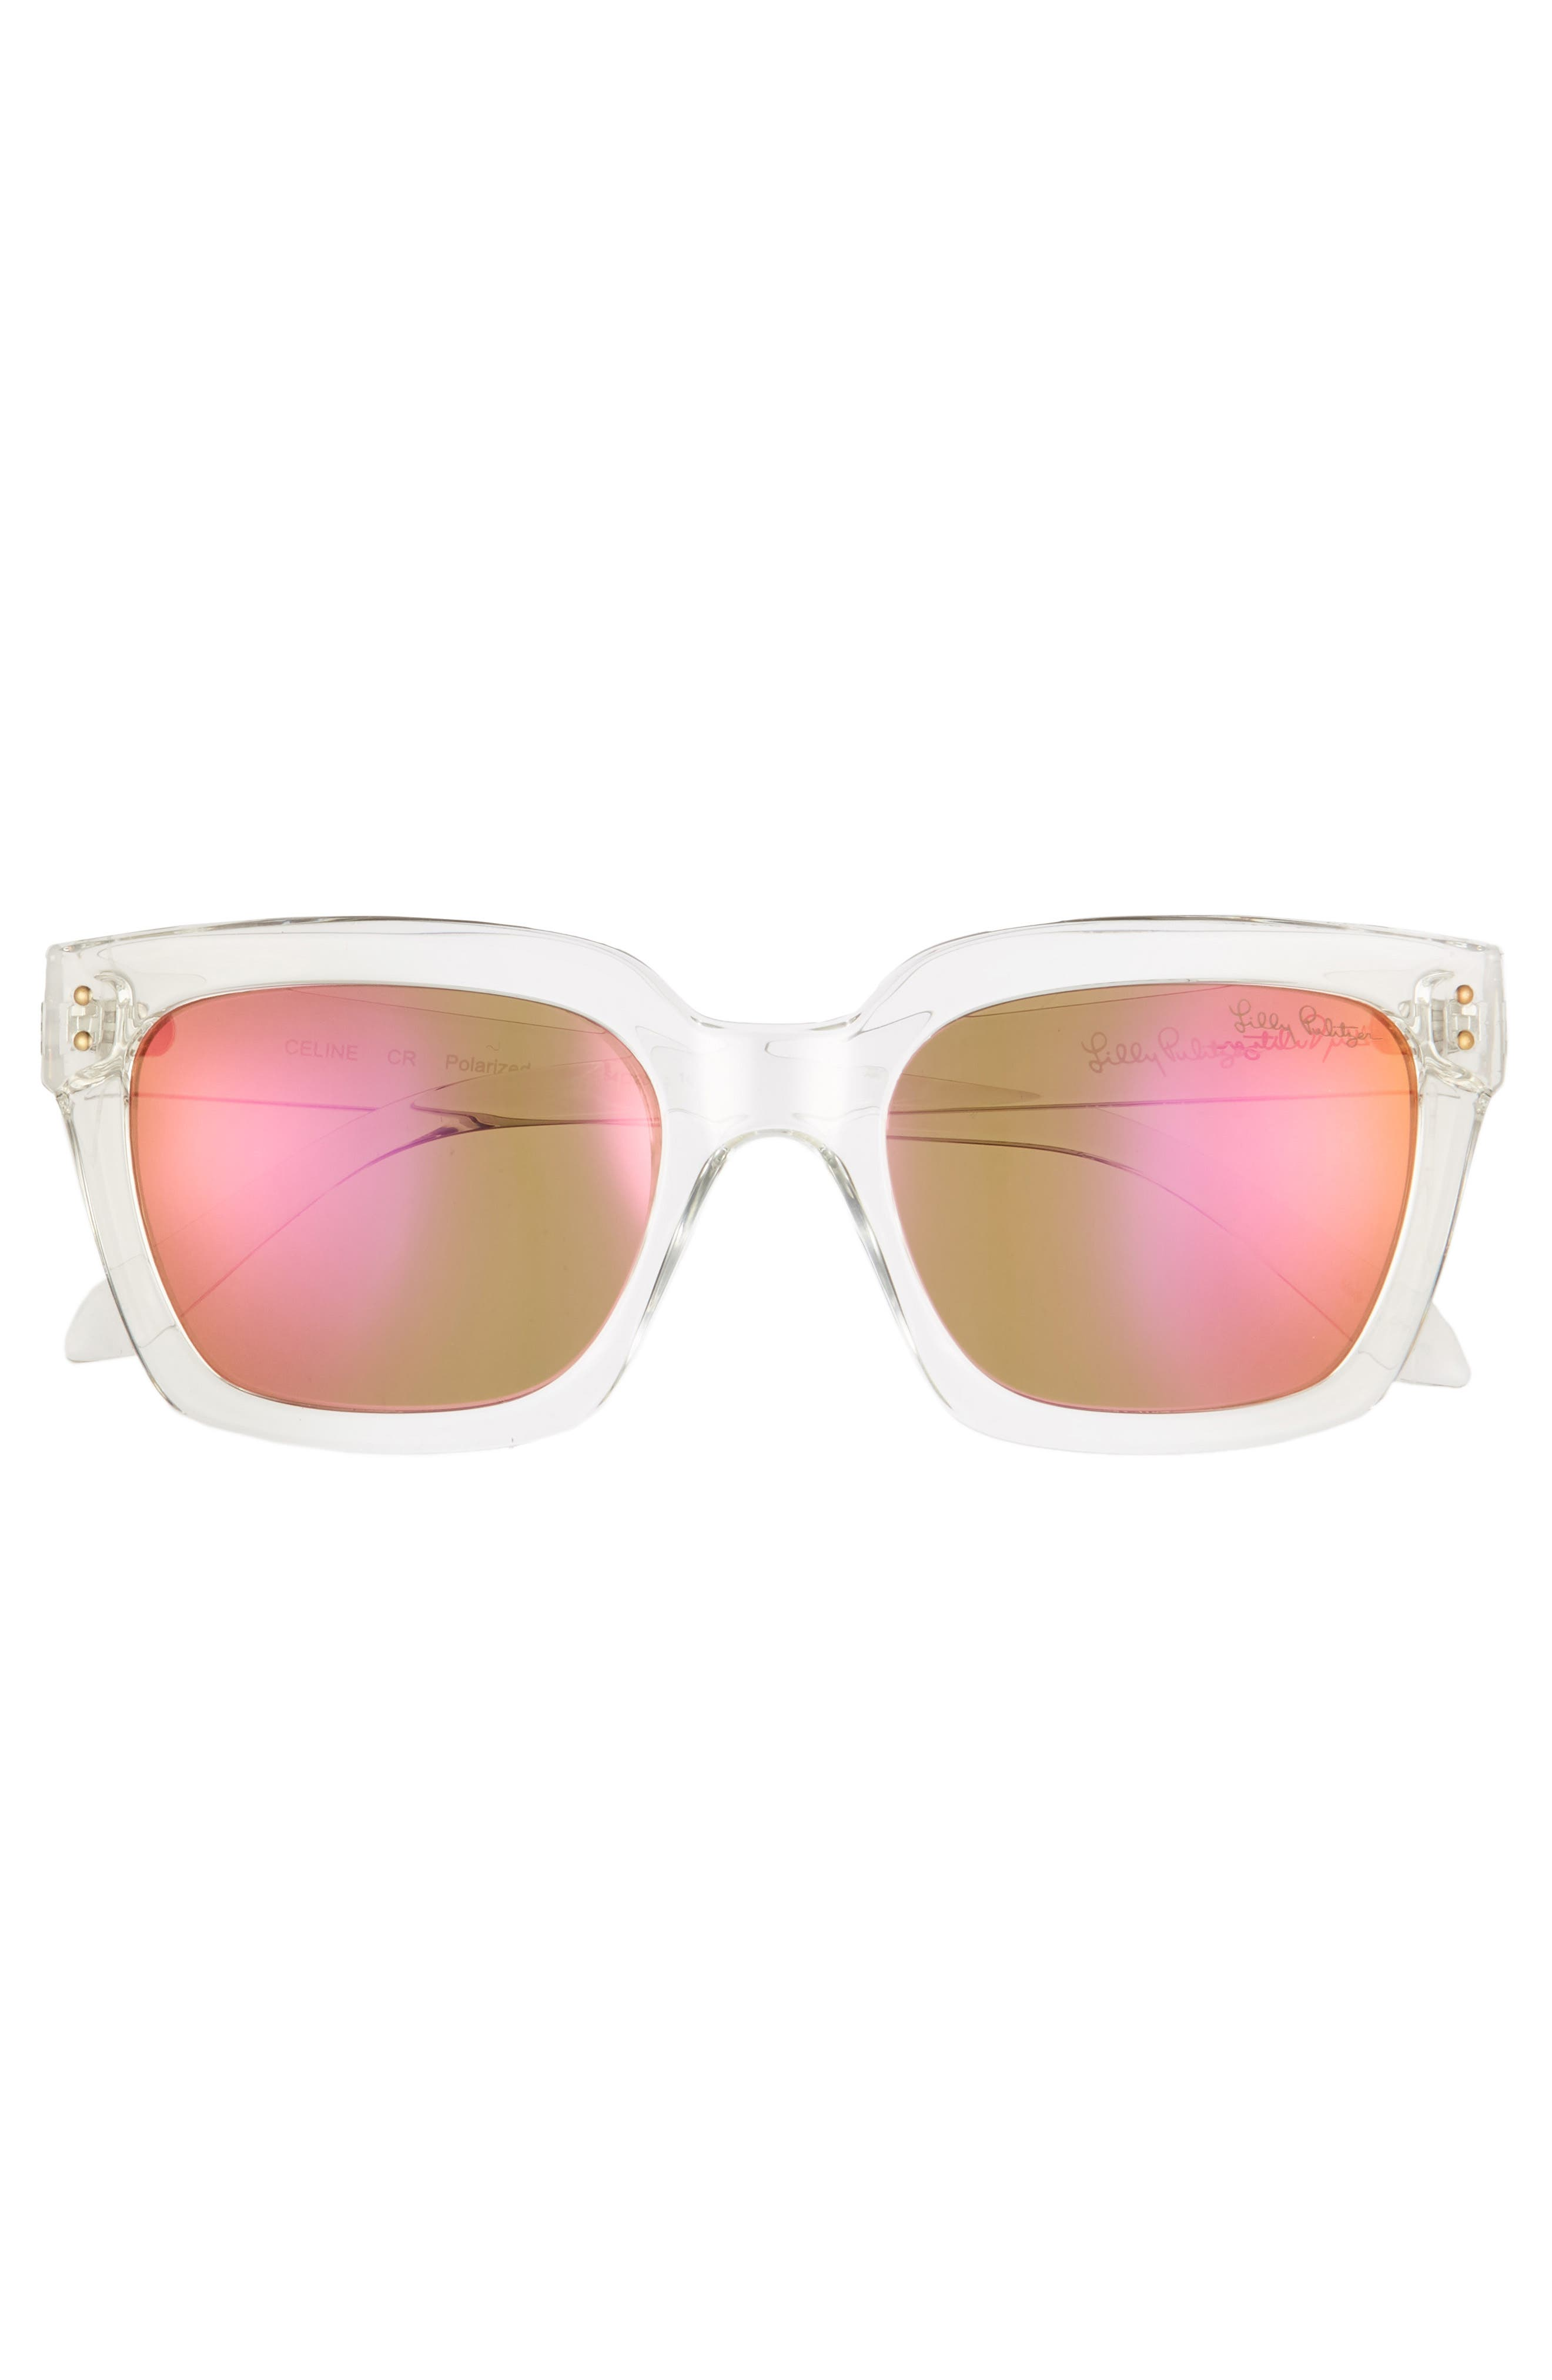 LILLY PULITZER<SUP>®</SUP>,                             Lilly Pulitzer Celine 54mm Polarized Square Sunglasses,                             Alternate thumbnail 3, color,                             CRYSTAL CLEAR/ PINK MIRROR